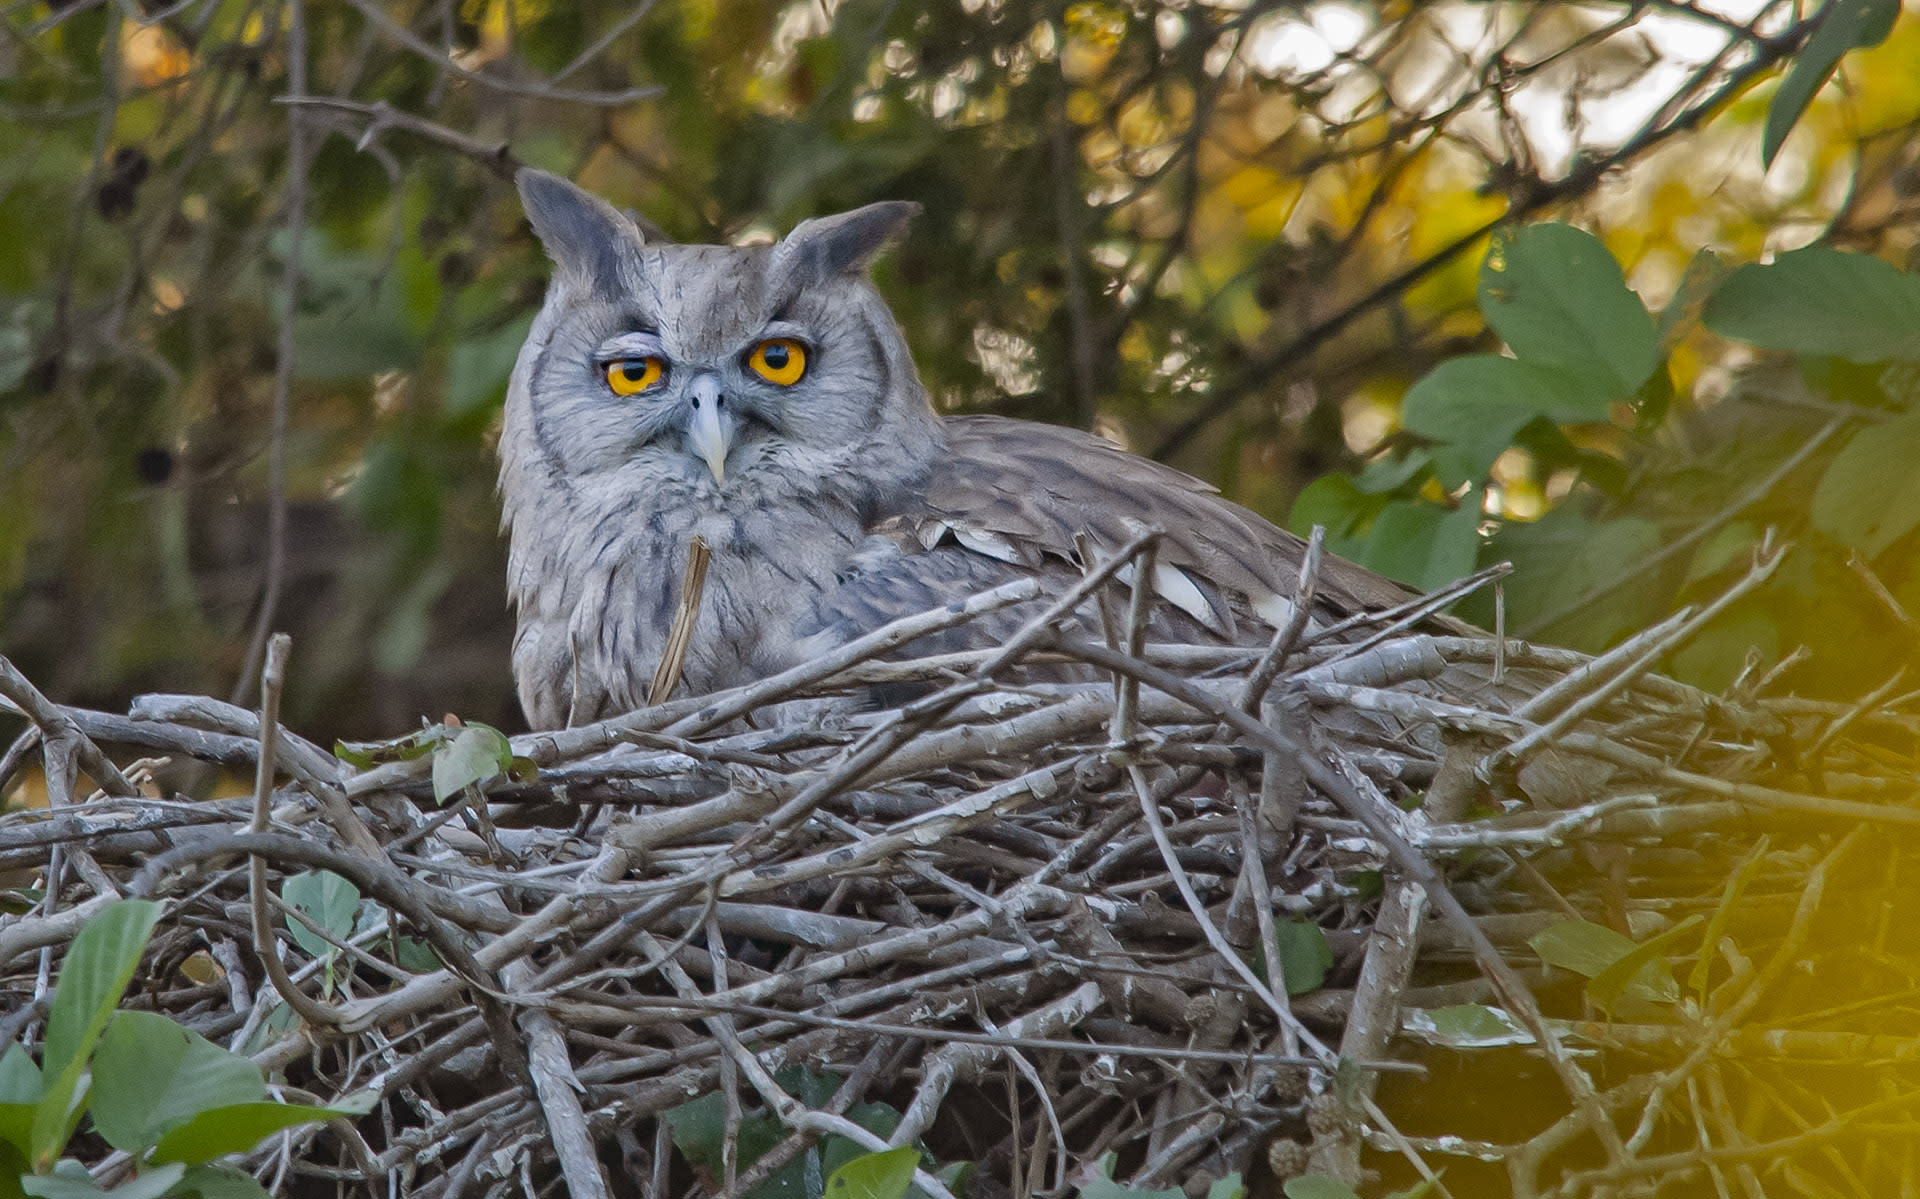 """While smaller owls prefer to roost in tree hollows, larger species, like this dusky eagle-owl (Bubo coromandus) like to perch on tree branches. Their pointy ear tufts give them a distinct appearance, making them fairly easy to recognise. They like to inhabit wide, open areas, preferably near water, so """"you may see them in the grasslands of Kaziranga or near a canal in Haryana,"""" says Dalvi. The best way to recognise them is by their call, he suggests: """"Tak-tak-trrr — like a ping pong ball on a table, but much louder."""""""